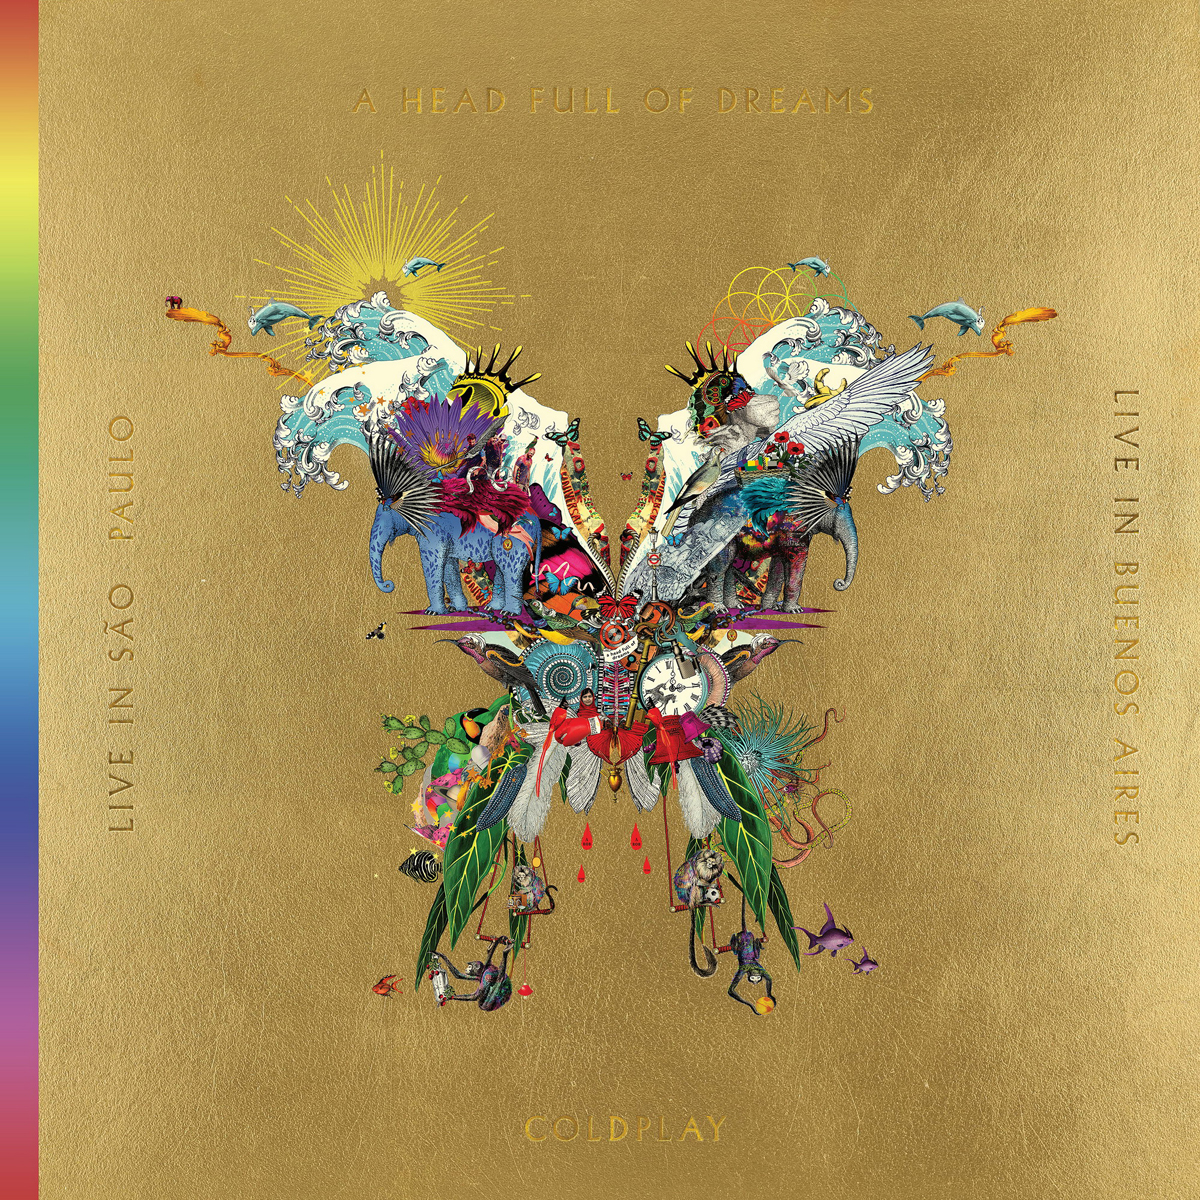 Coldplay Coldplay. Live In Buenos Aires / Live In Sao Paulo / A Head Full Of Dreams (2 CD + 2 DVD)